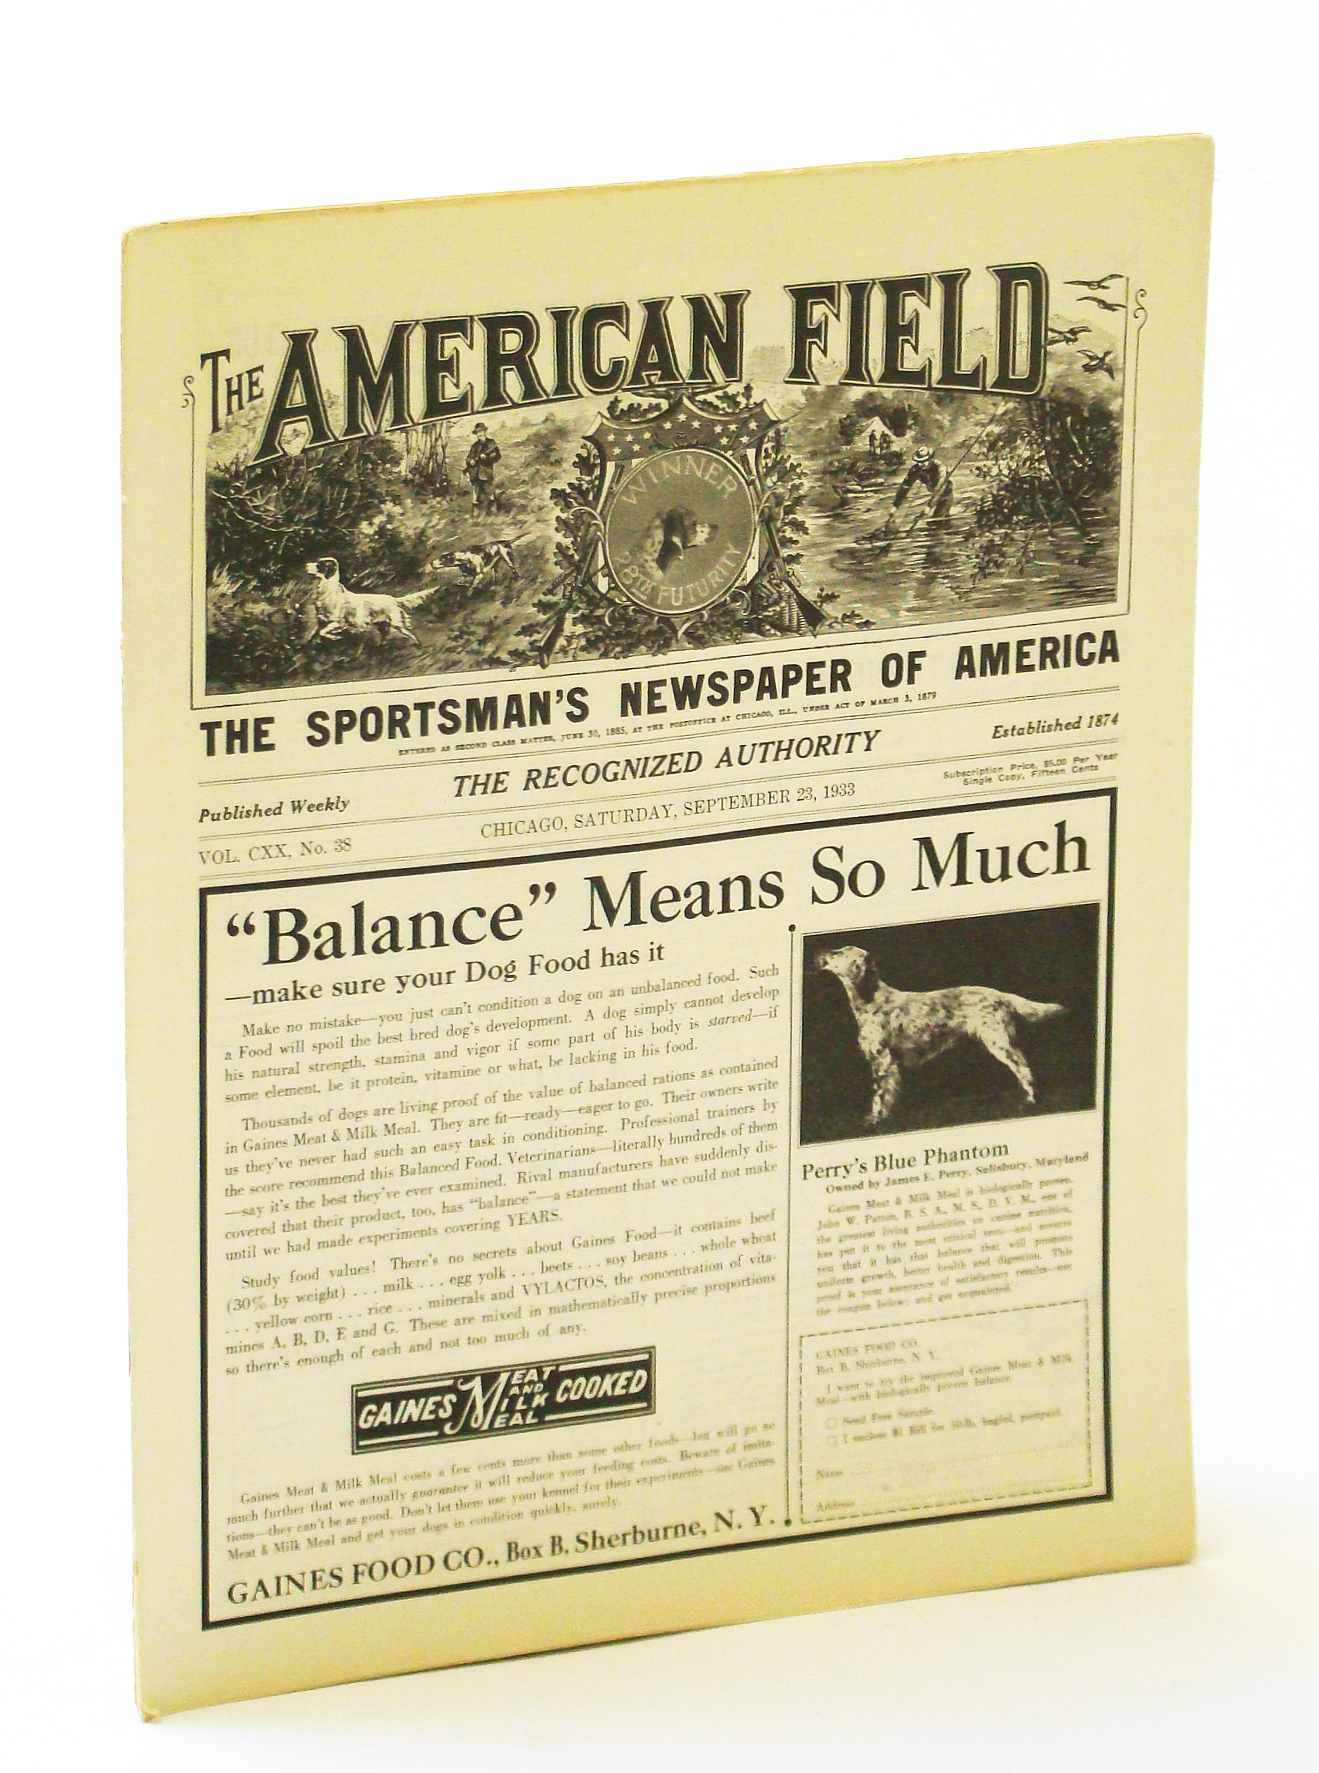 Image for The American Field - The Sportsman's Newspaper [Magazine] of America, September [Sept.] 23, 1933, Vol. CXX, No. 38 - All-America Prairie Chicken Trials